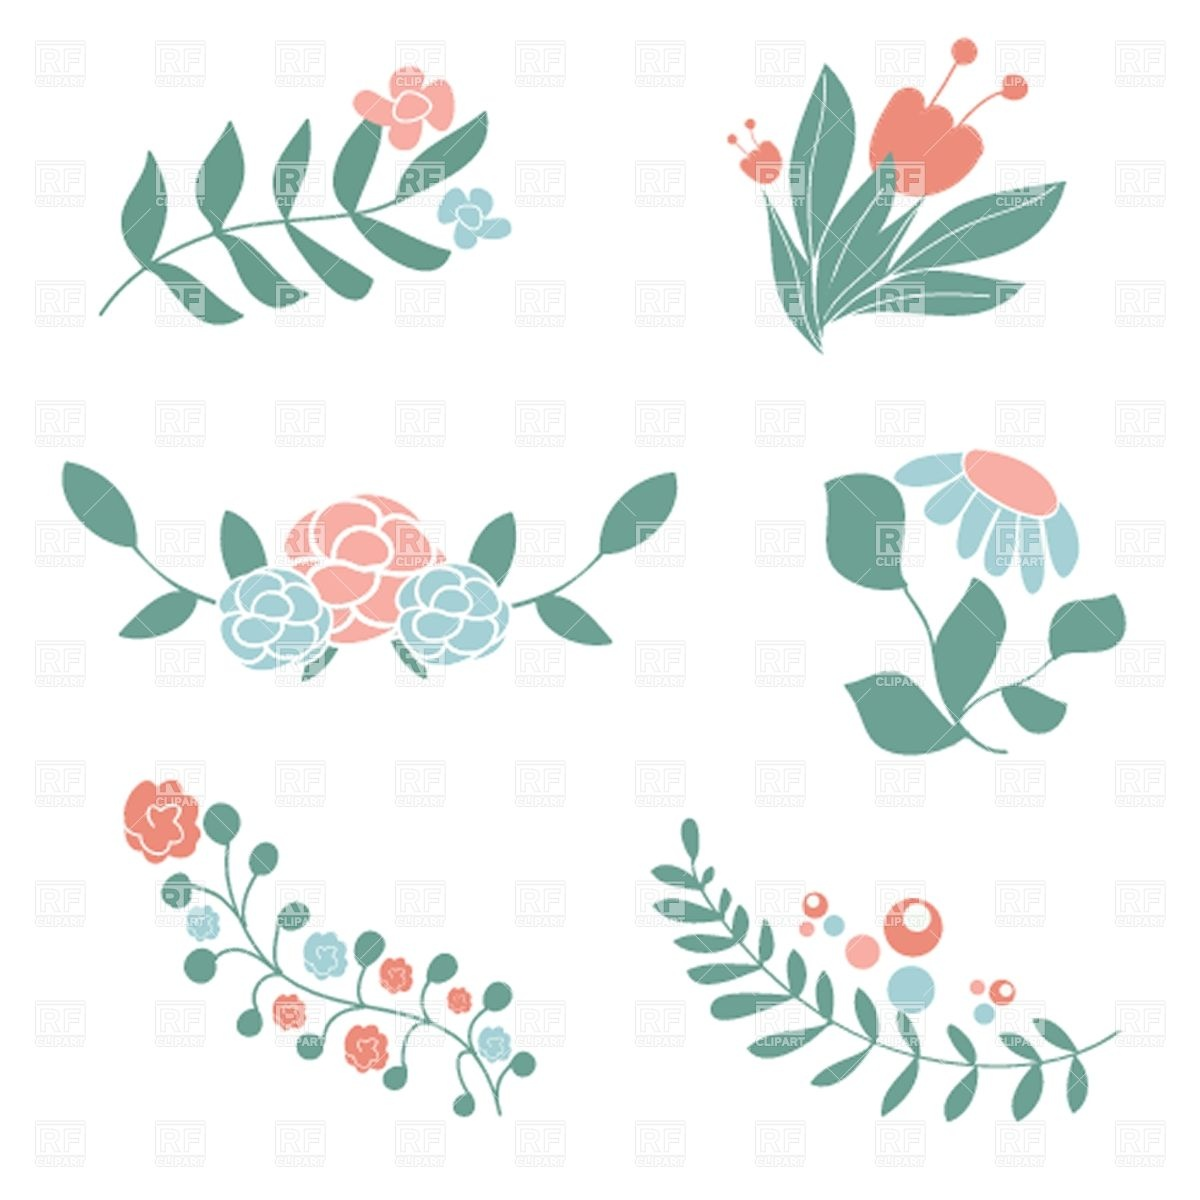 Floral vector clip art free download svg library library Floral vector clip art free download - ClipartFest svg library library